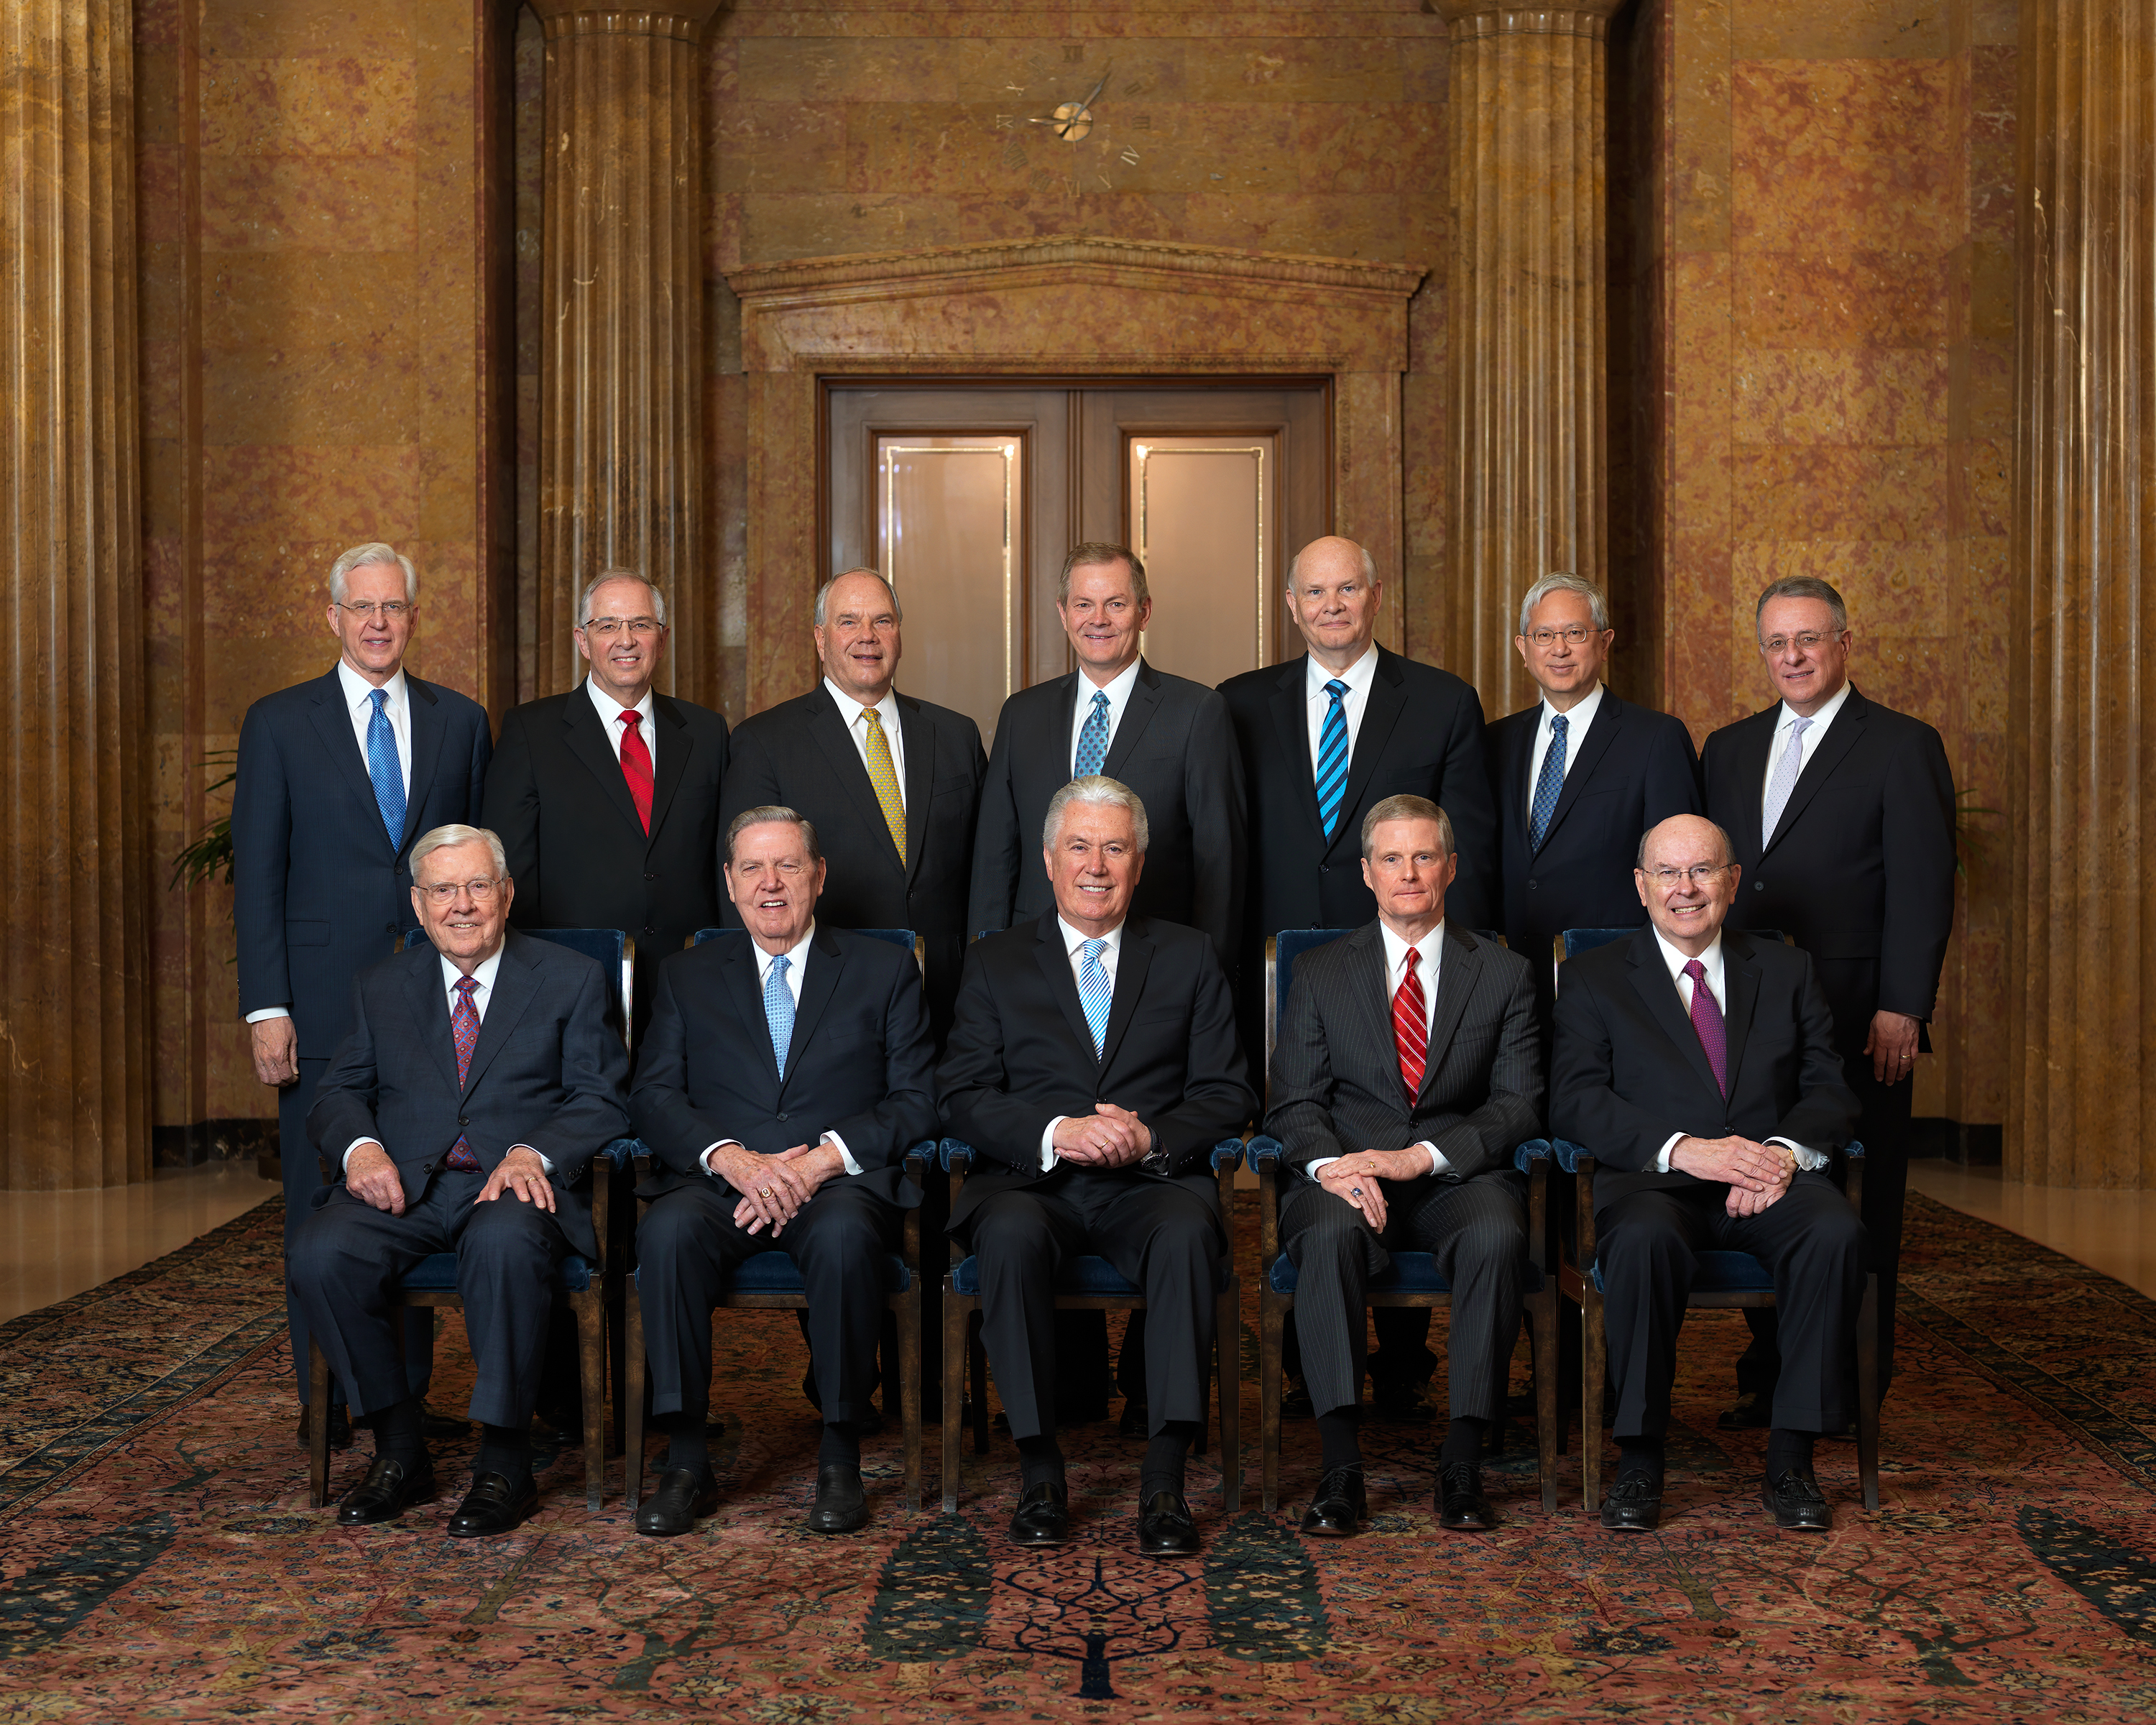 The Quorum of the Twelve Apostles of The Church of Jesus Christ of Latter-day Saints.